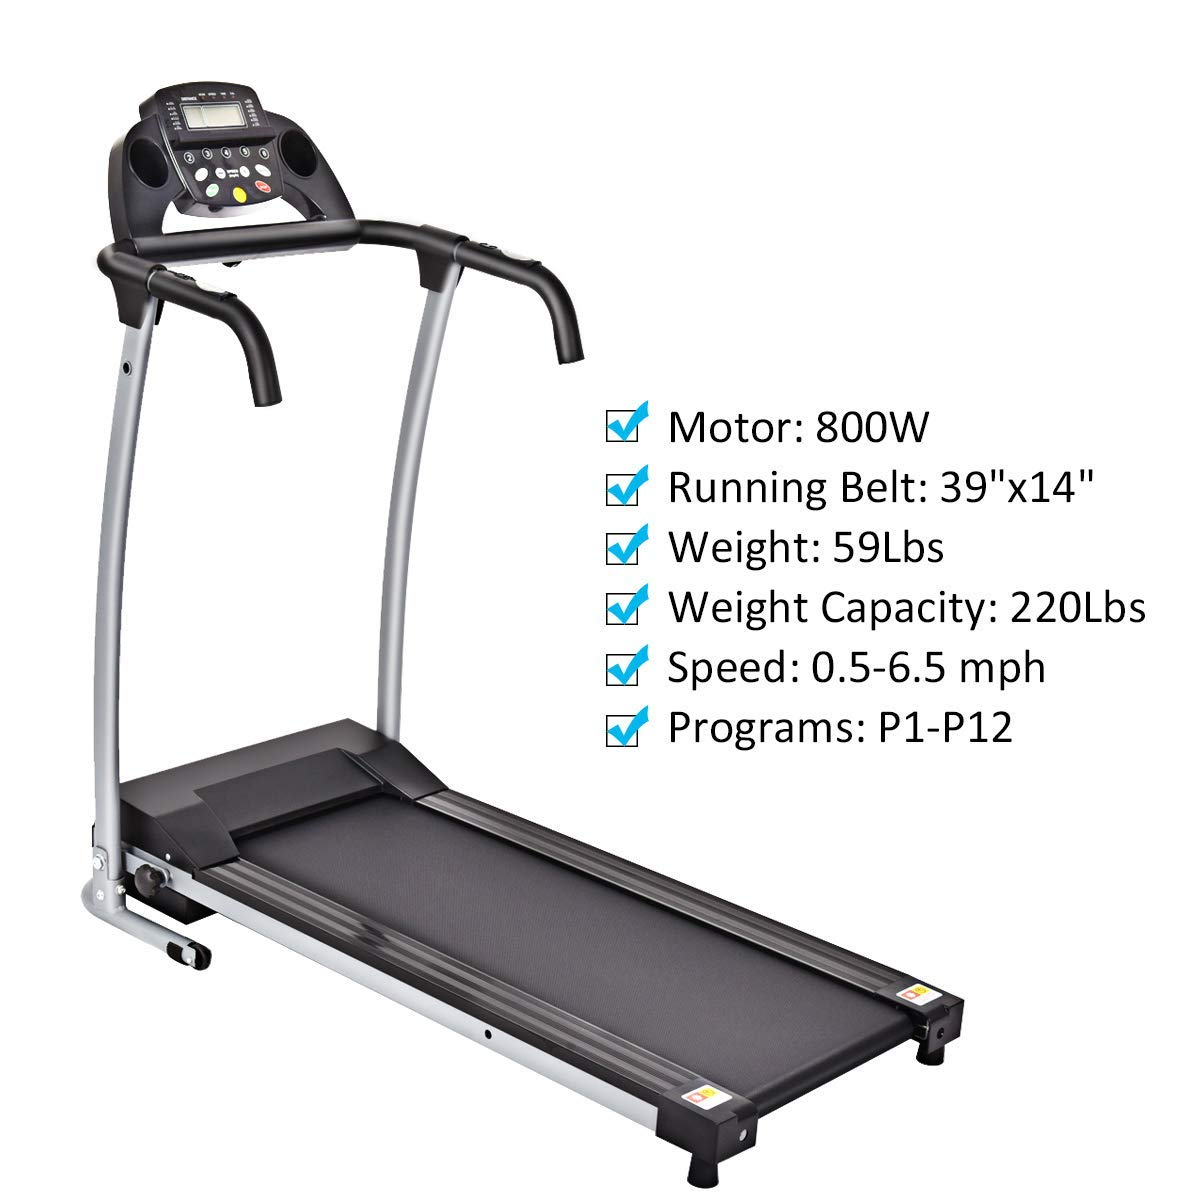 GYMAX Folding Exercise Treadmill Fitness Electric Treadmill Electric Motorized Power Fitness Running Machine 800W W/IPAD Mobile Phone Holder (Black) by GYMAX (Image #3)